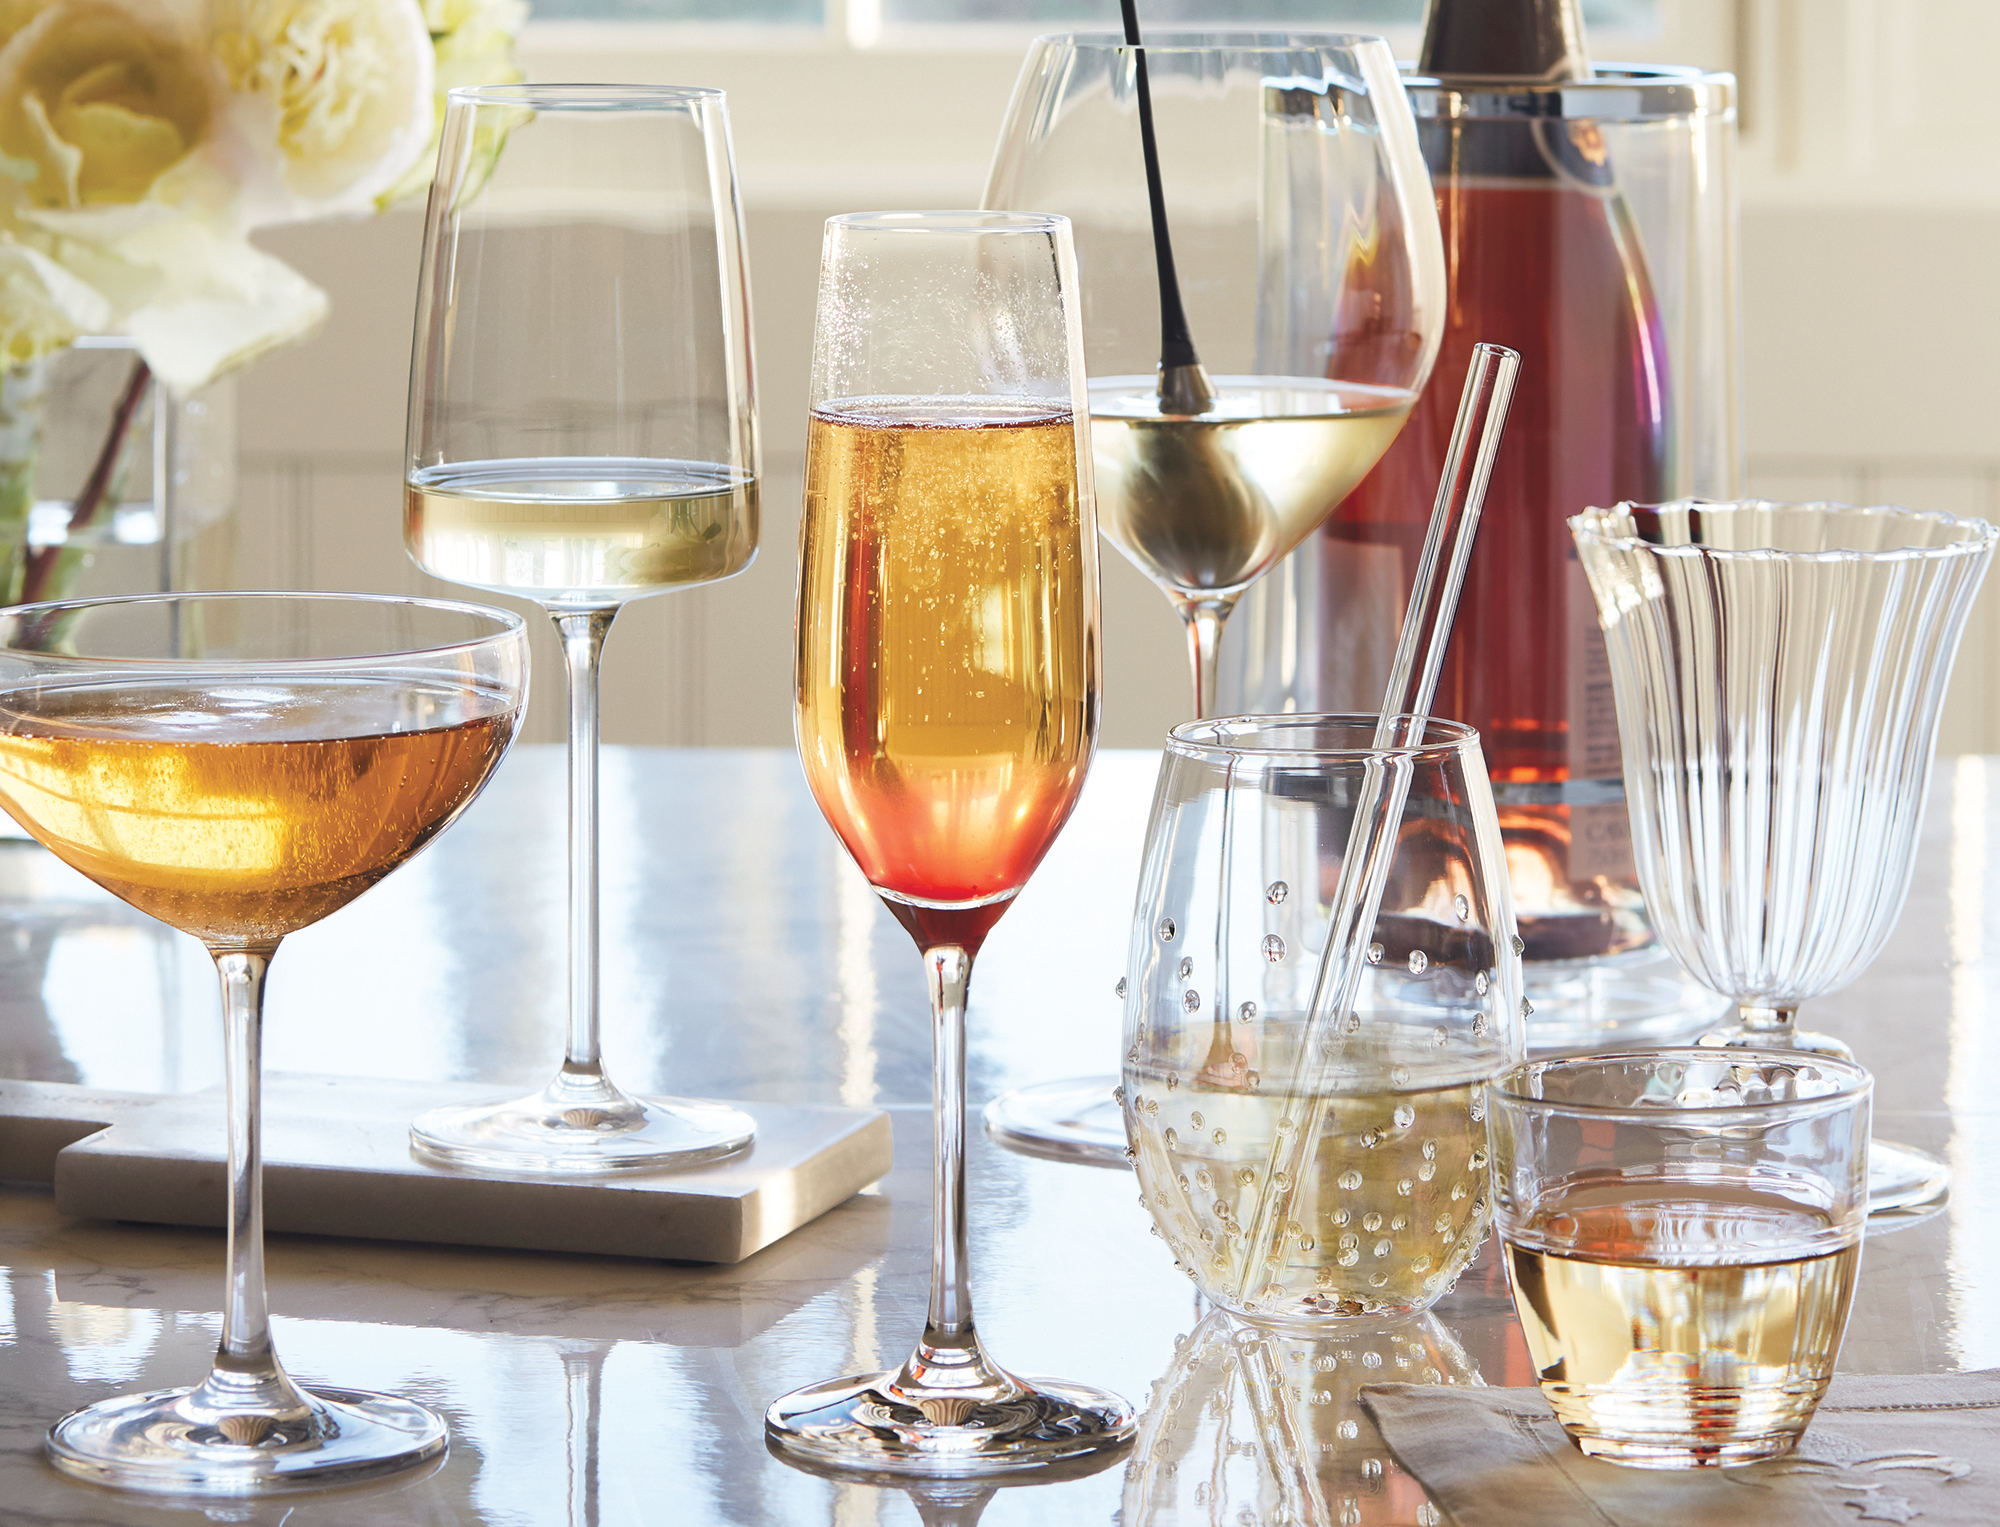 White & Sparkling Wine Glasses from IWA